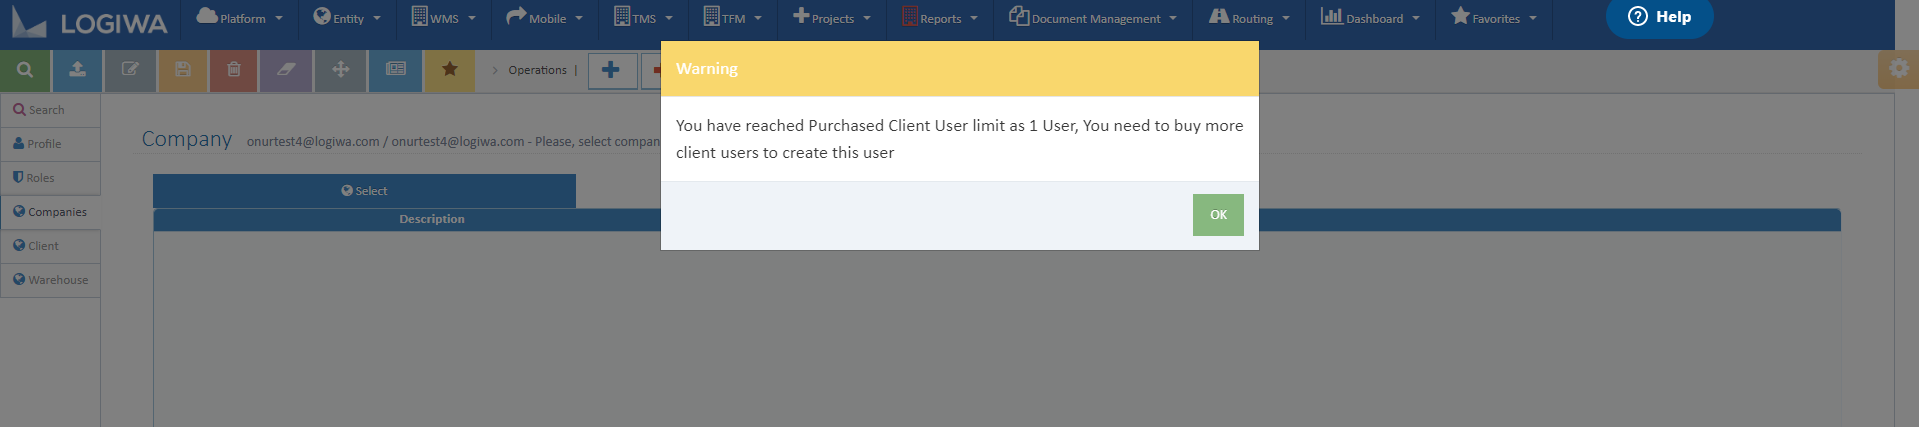 You_have_reached_Purchased_Client_User_limit_as_1_User__You_need_to_buy_more_client_users_to_create_this_user.png